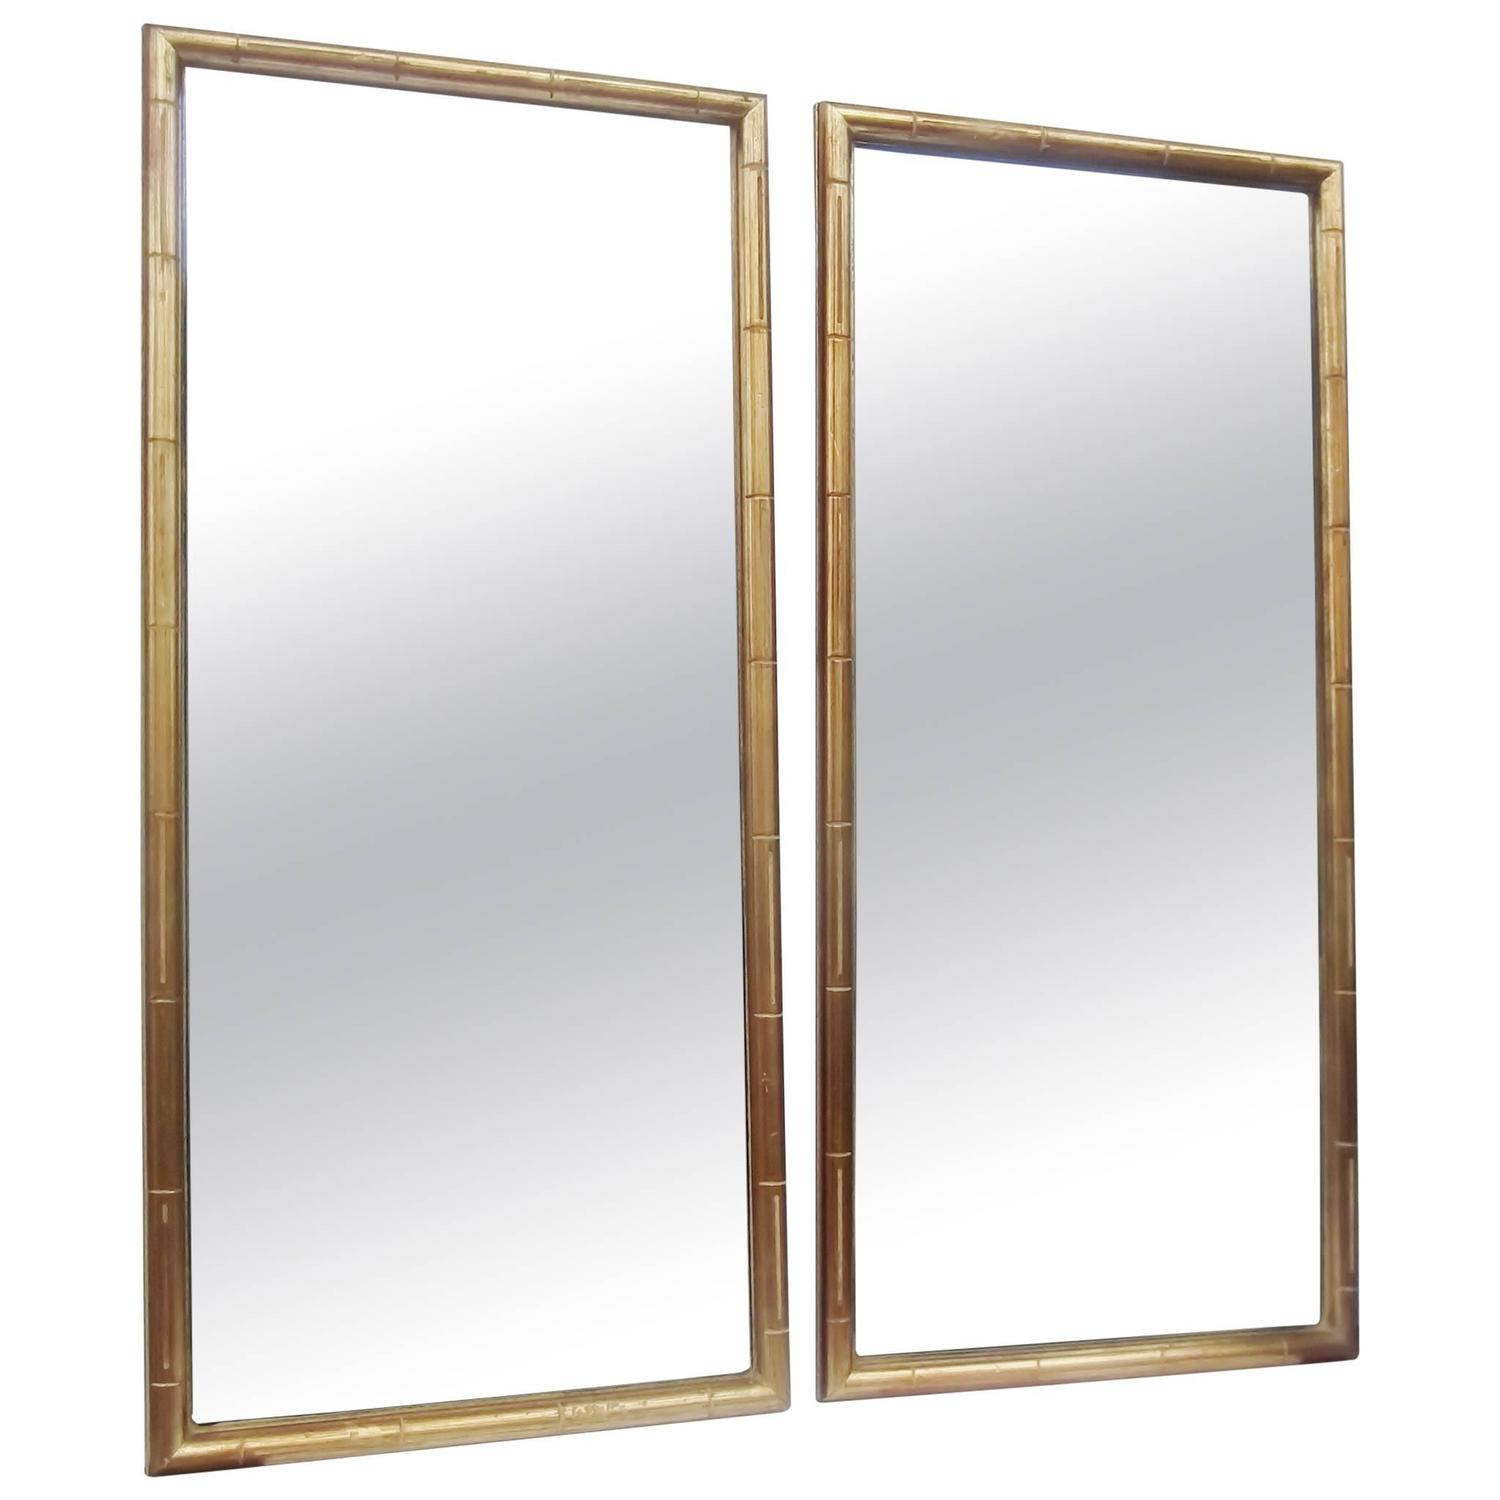 Pair of Simplistic Faux Bamboo-Framed Mirrors For Sale at 1stdibs